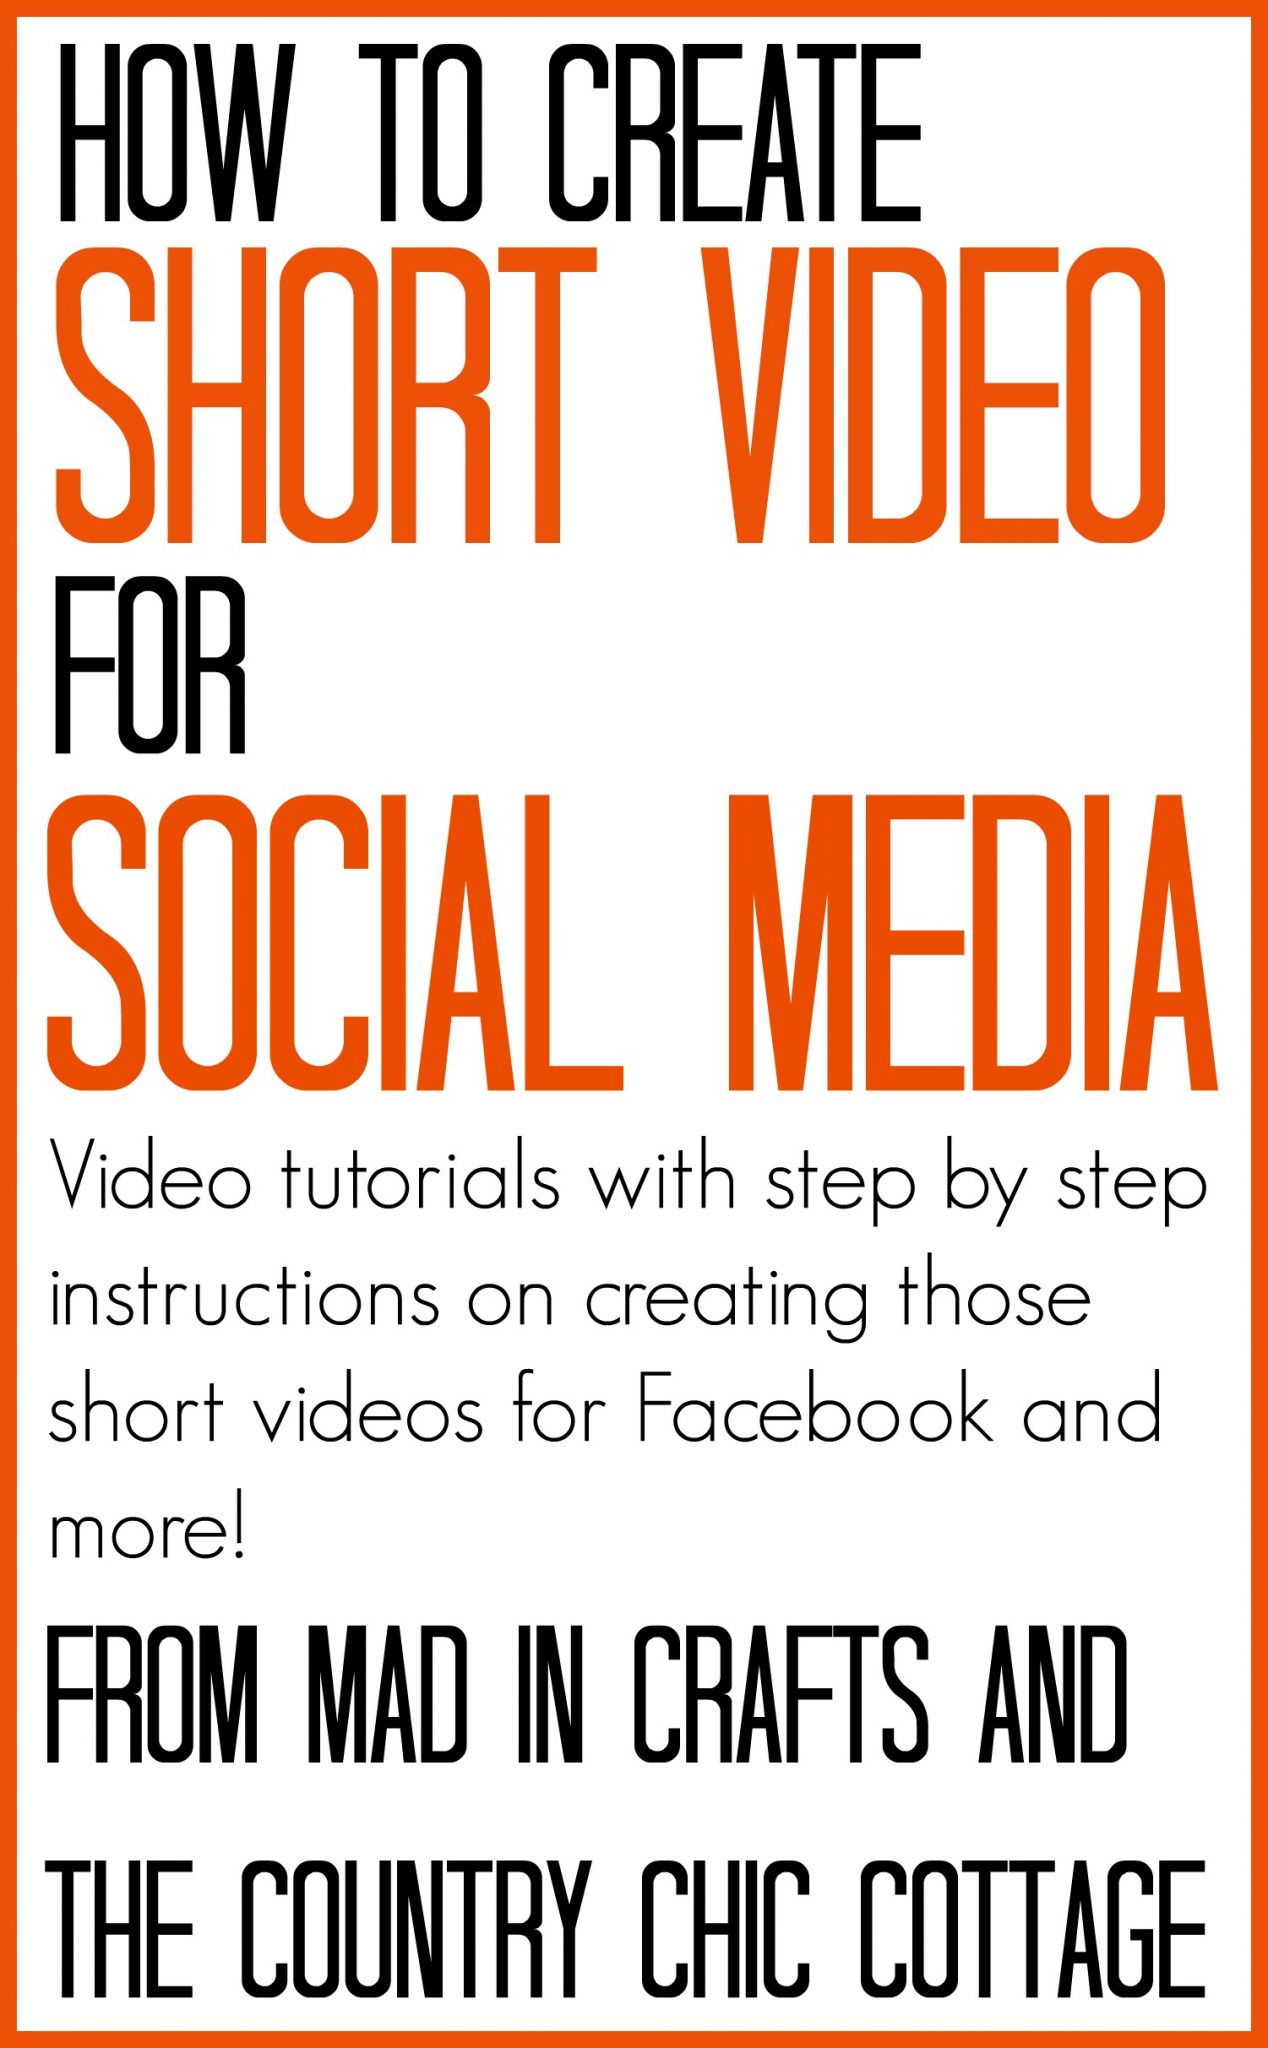 Learn how to create short video for social media with these great tools! Step by step videos explaining the entire process!